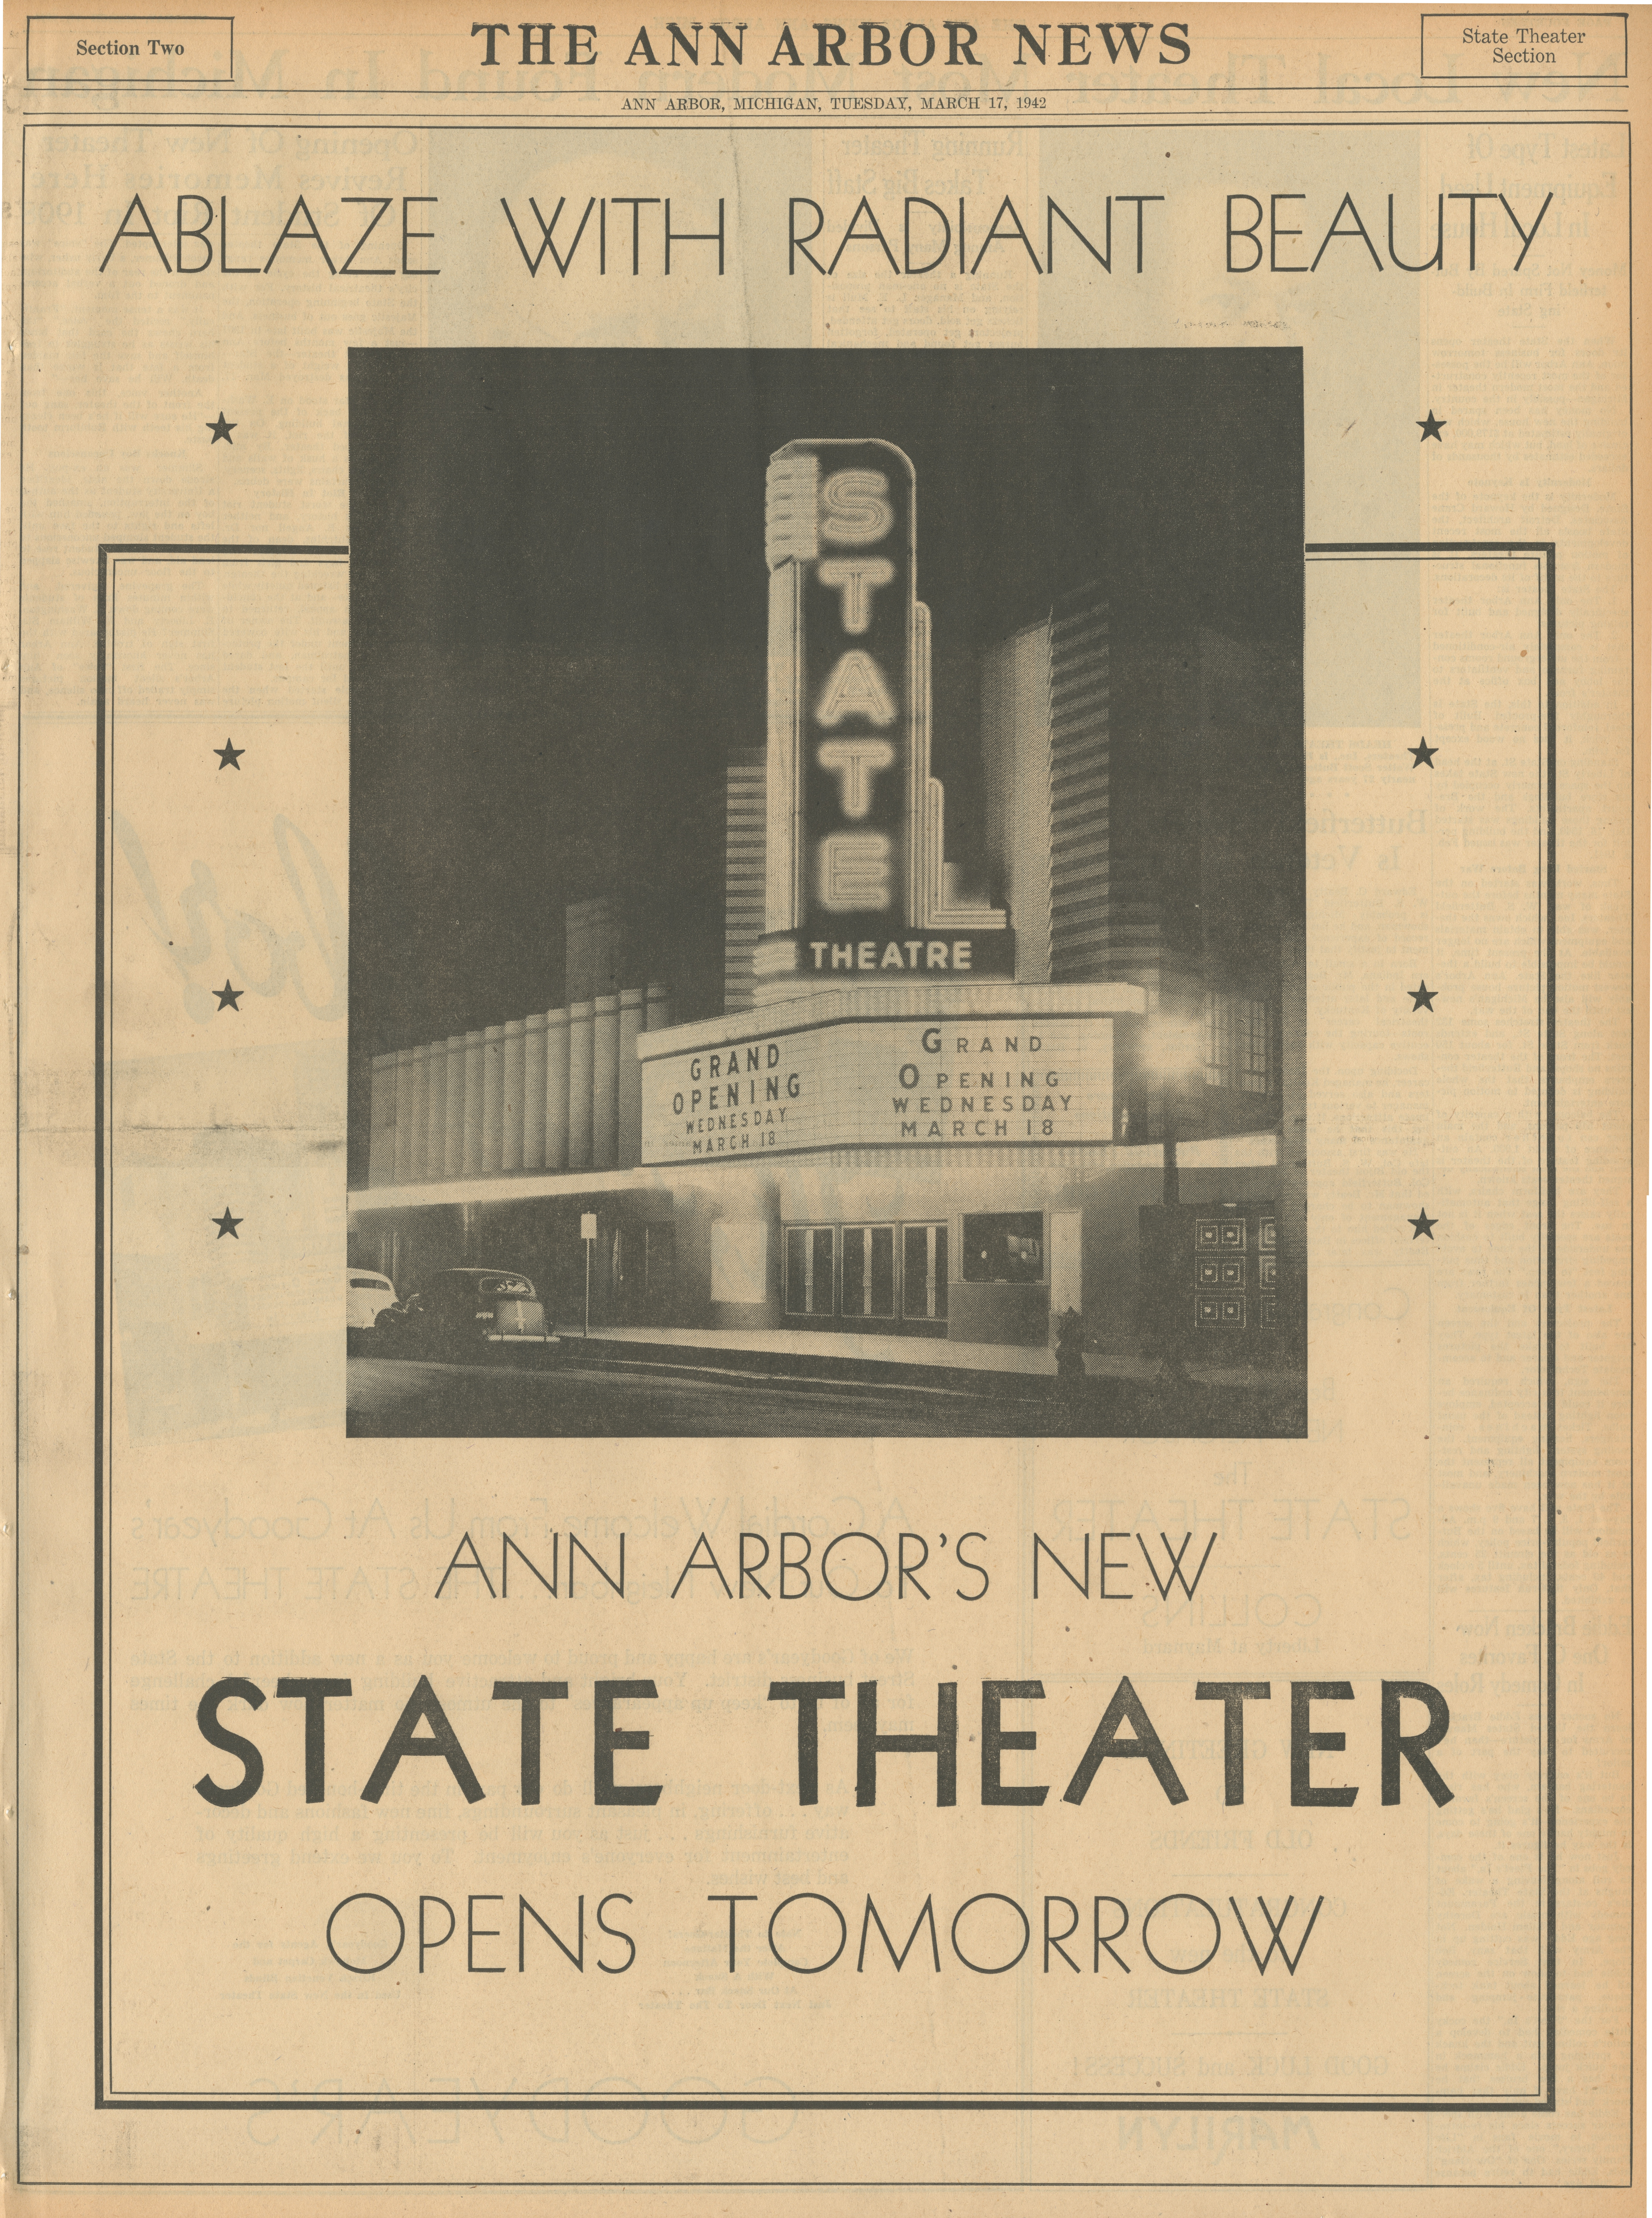 Ablaze With Radiant Beauty - Ann Arbor's New State Theater Opens Tomorrow image